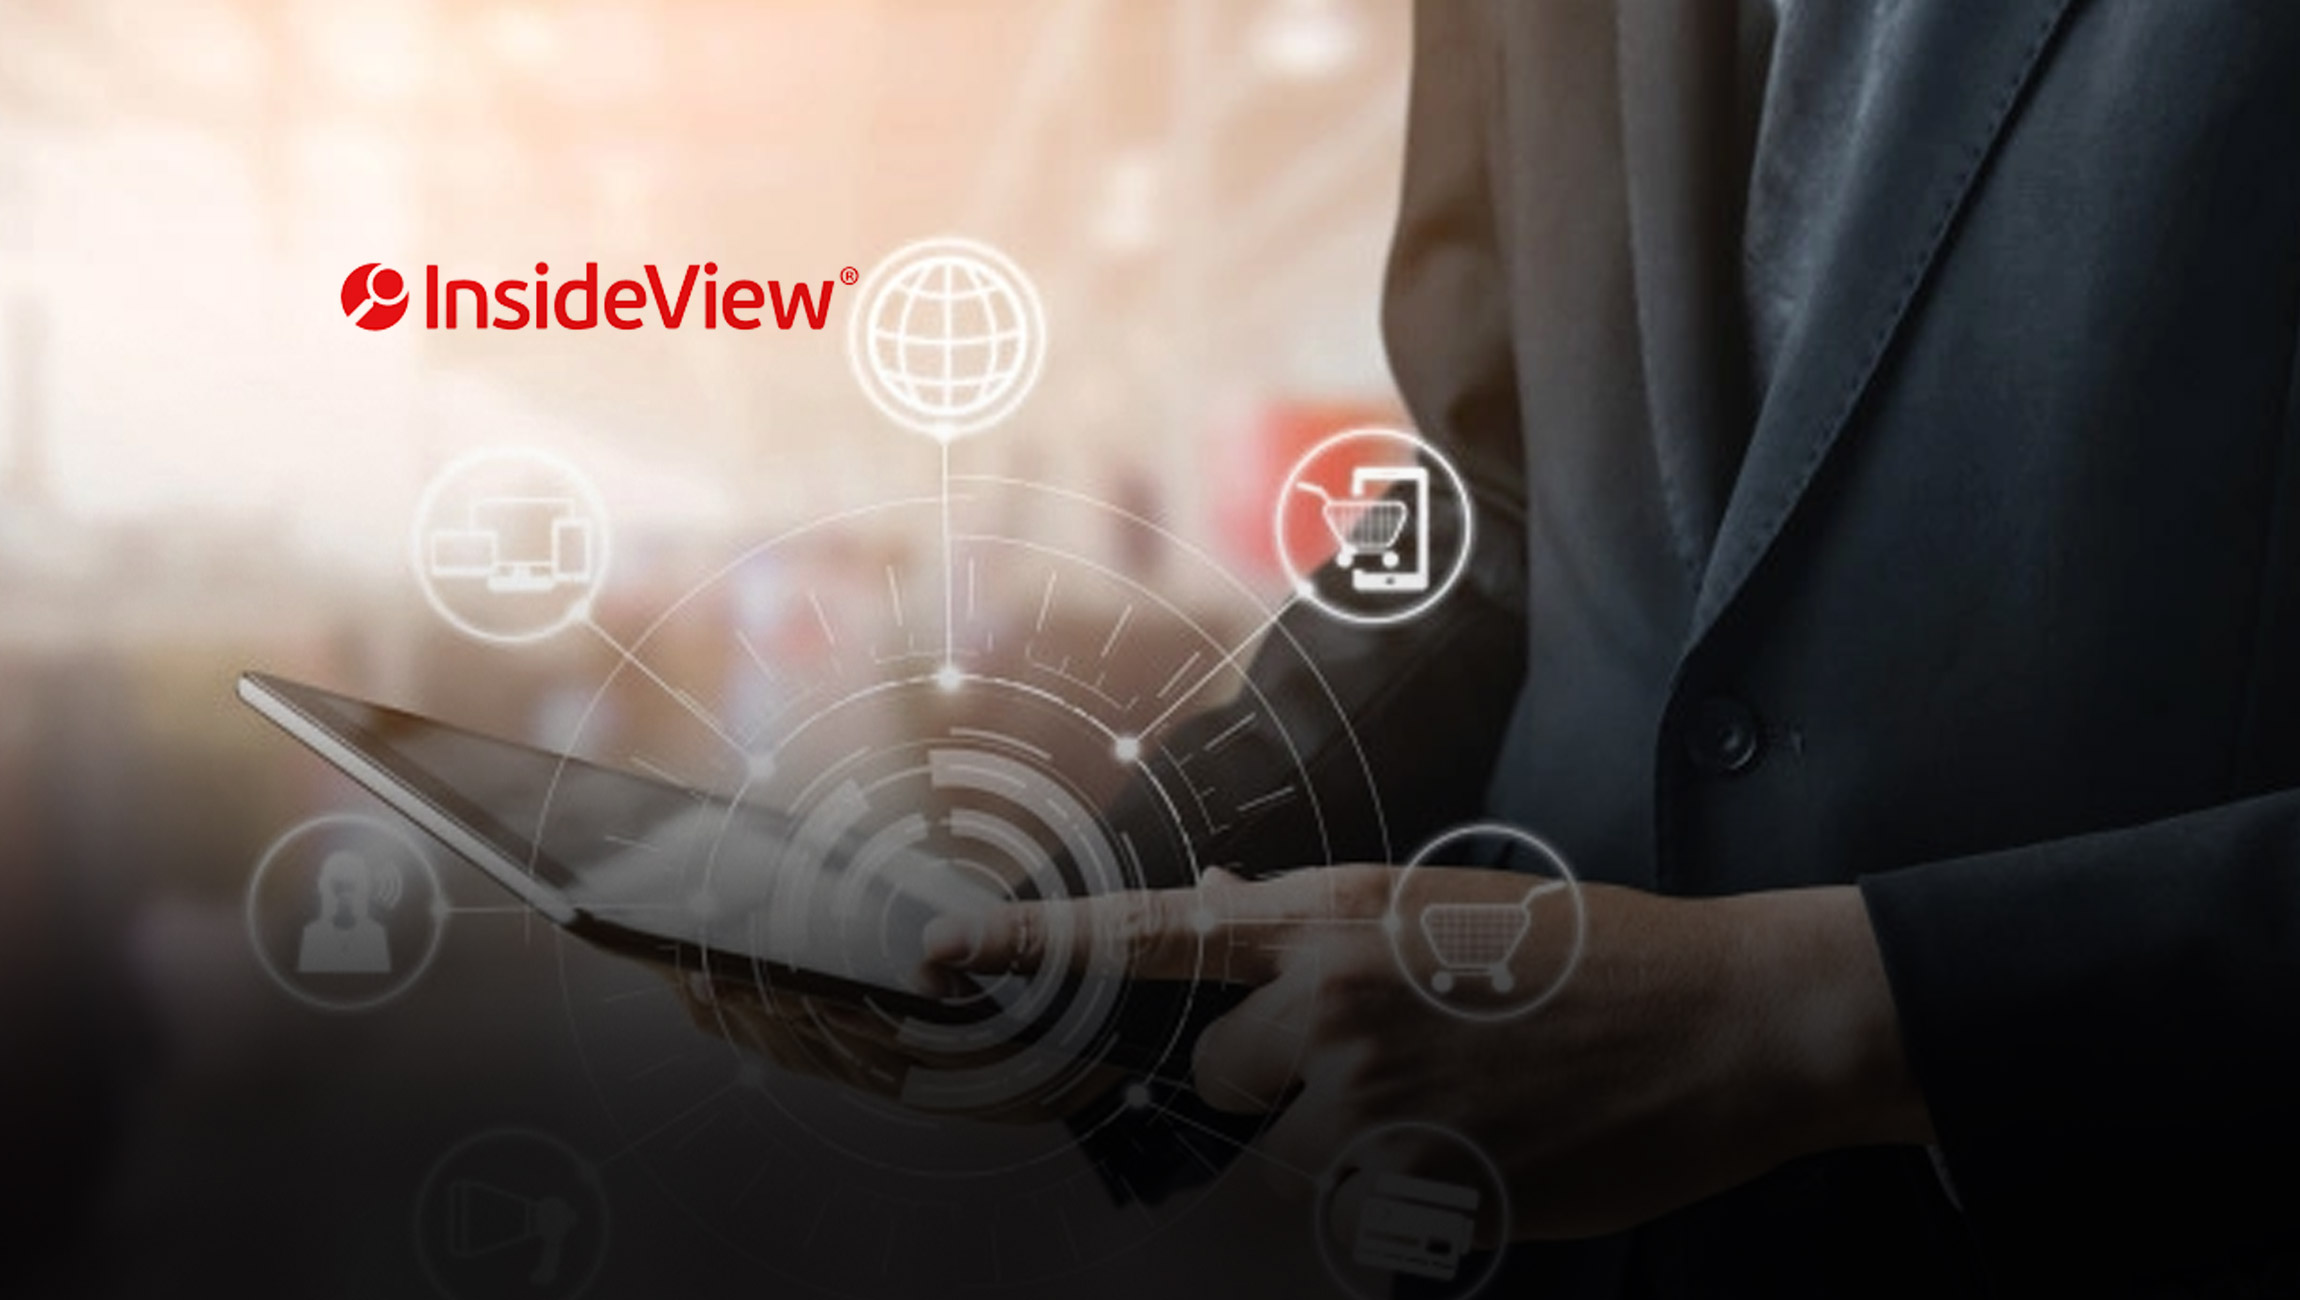 InsideView Launches Browser Extension and Consolidates Sales Intelligence Solutions, Enabling Customers to Sell Smarter Across CRM Platforms